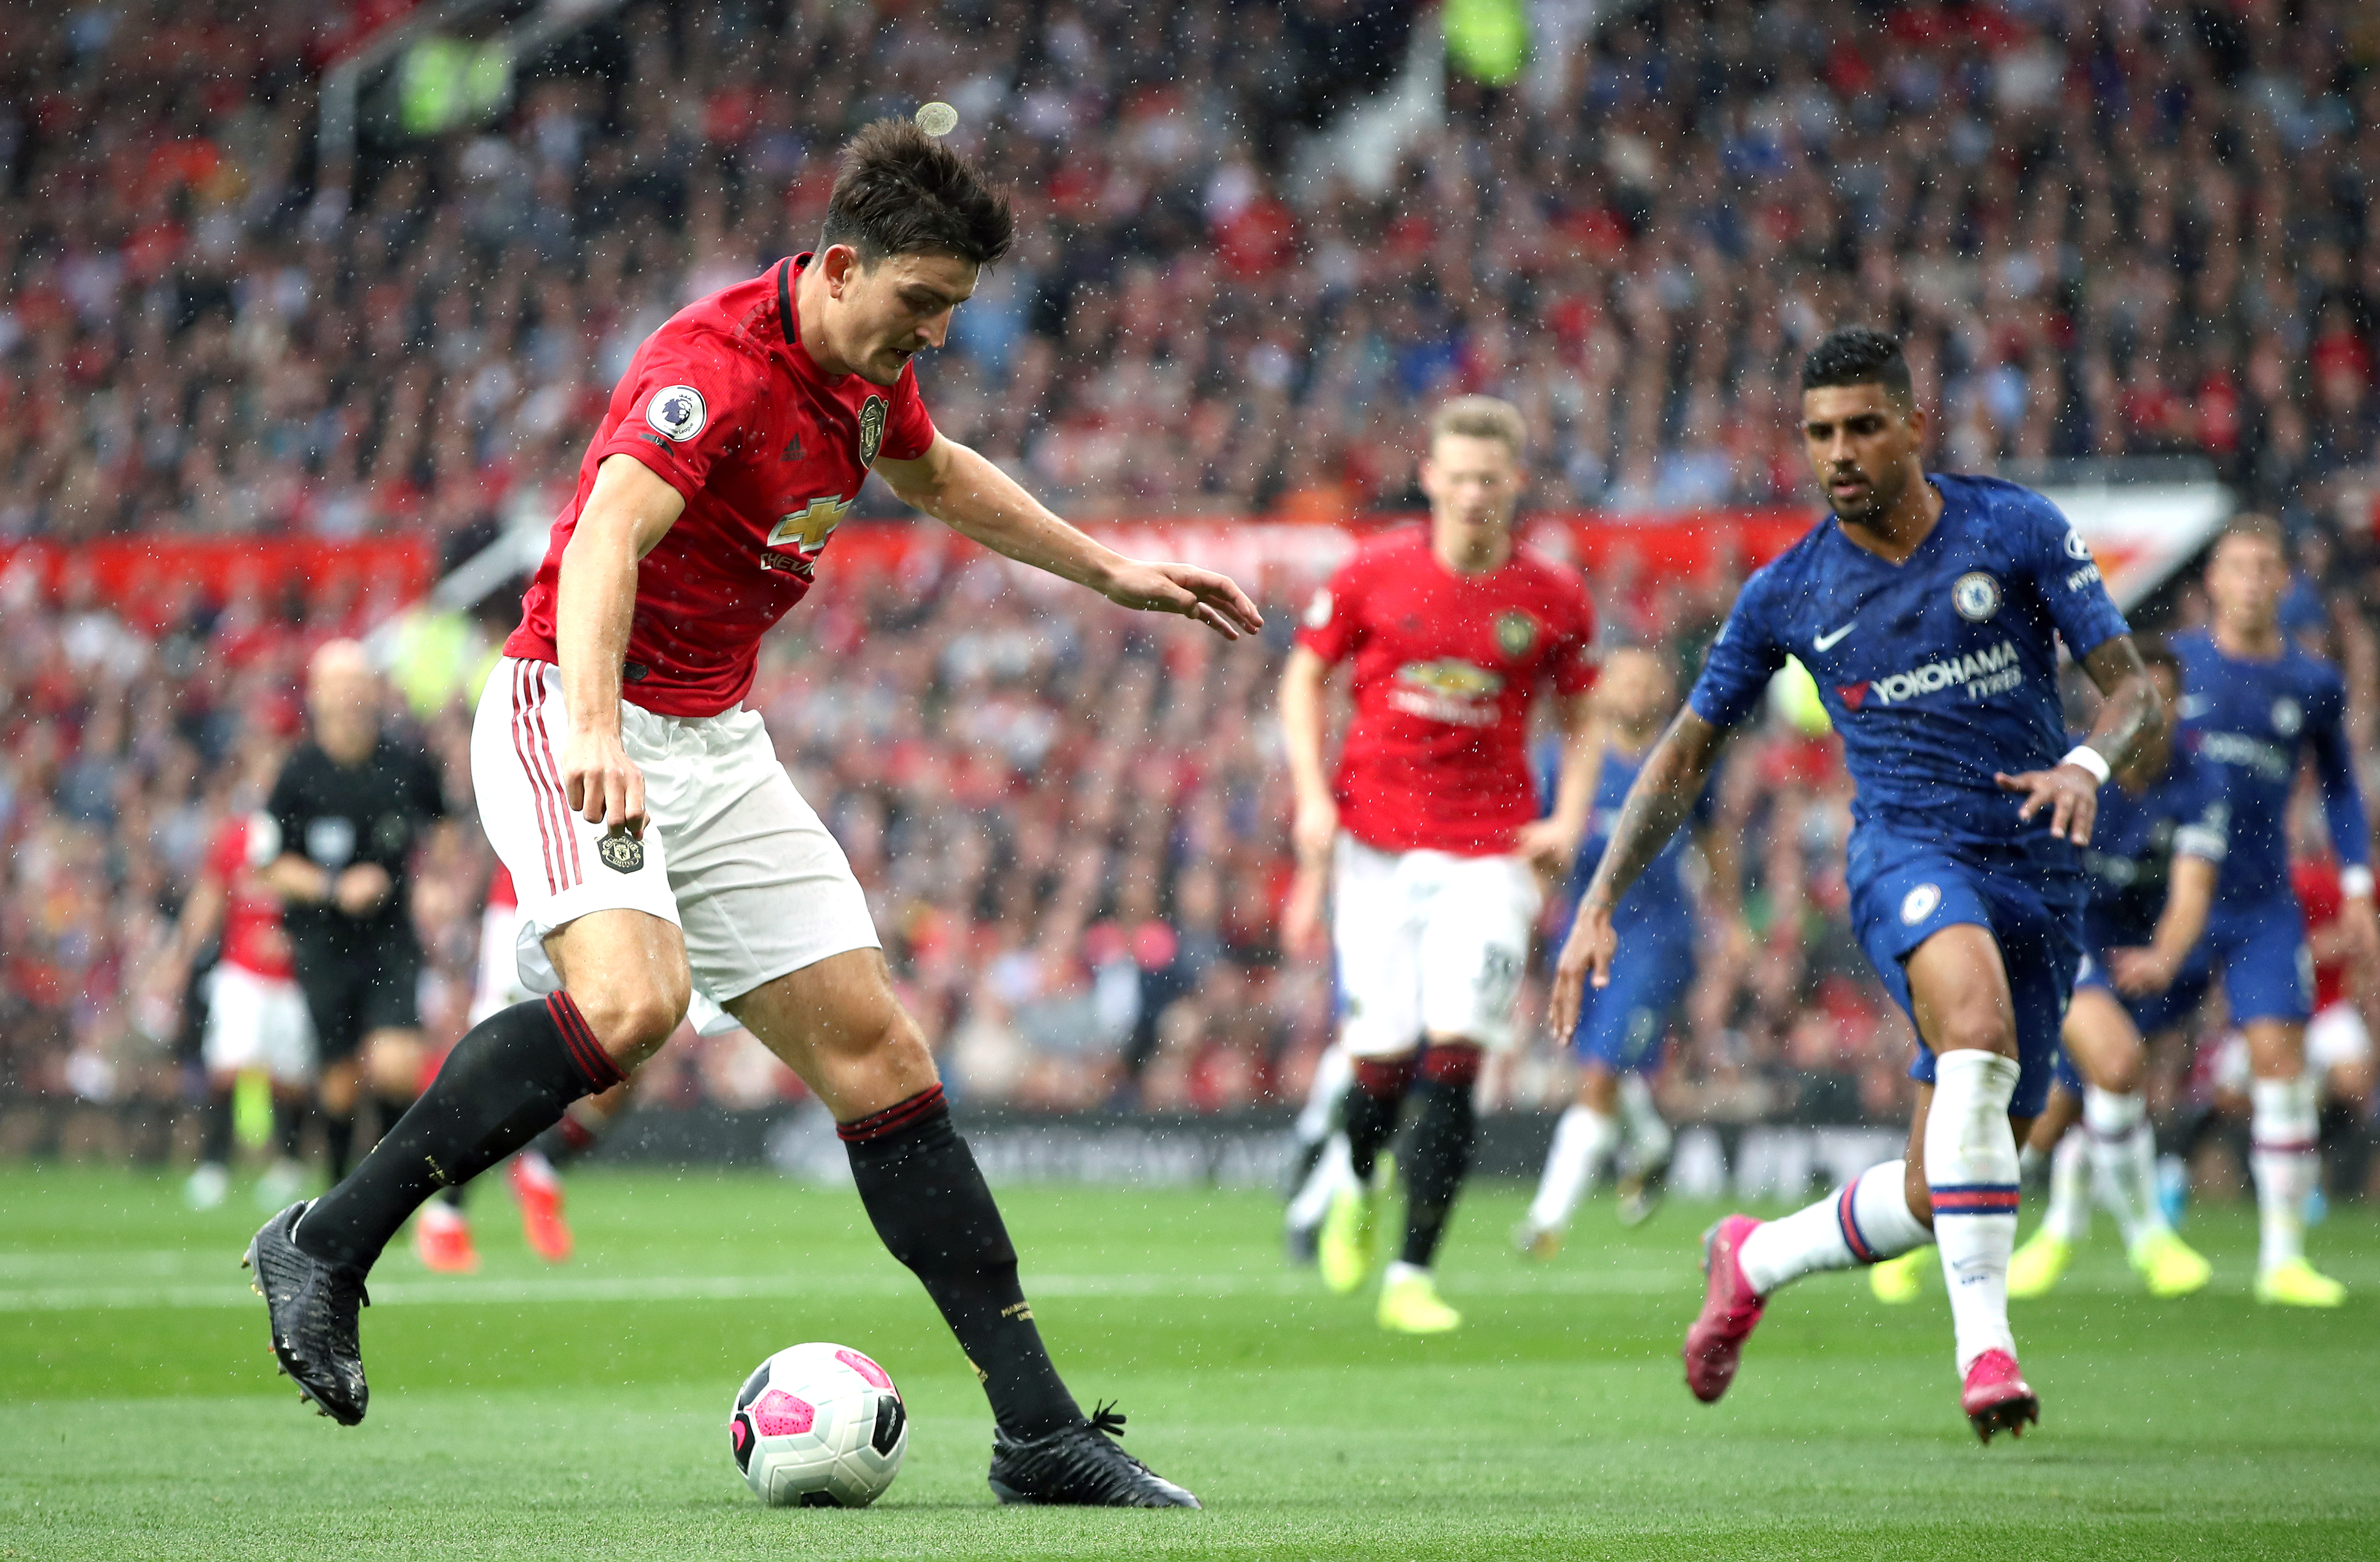 Harry Maguire was named man of the match on his Manchester United debut against Chelsea